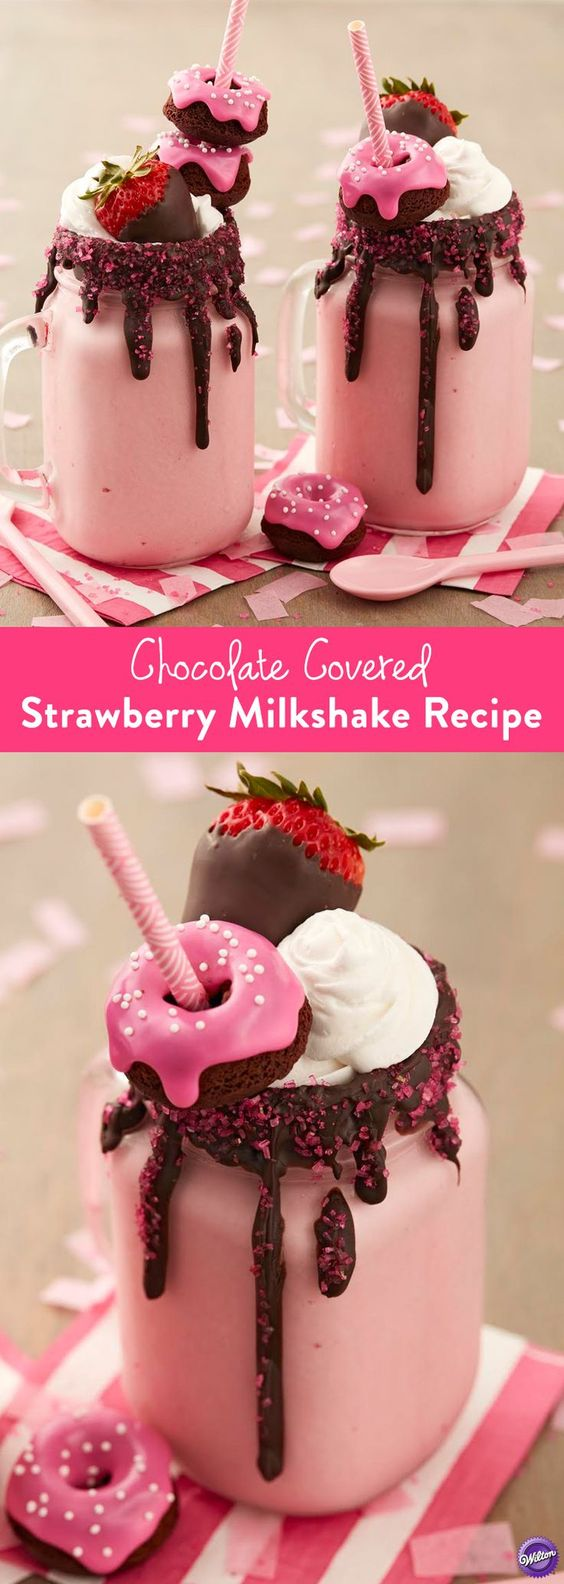 CHOCOLATE COVERED STRAWBERRY MILKSHAKES RECIPE